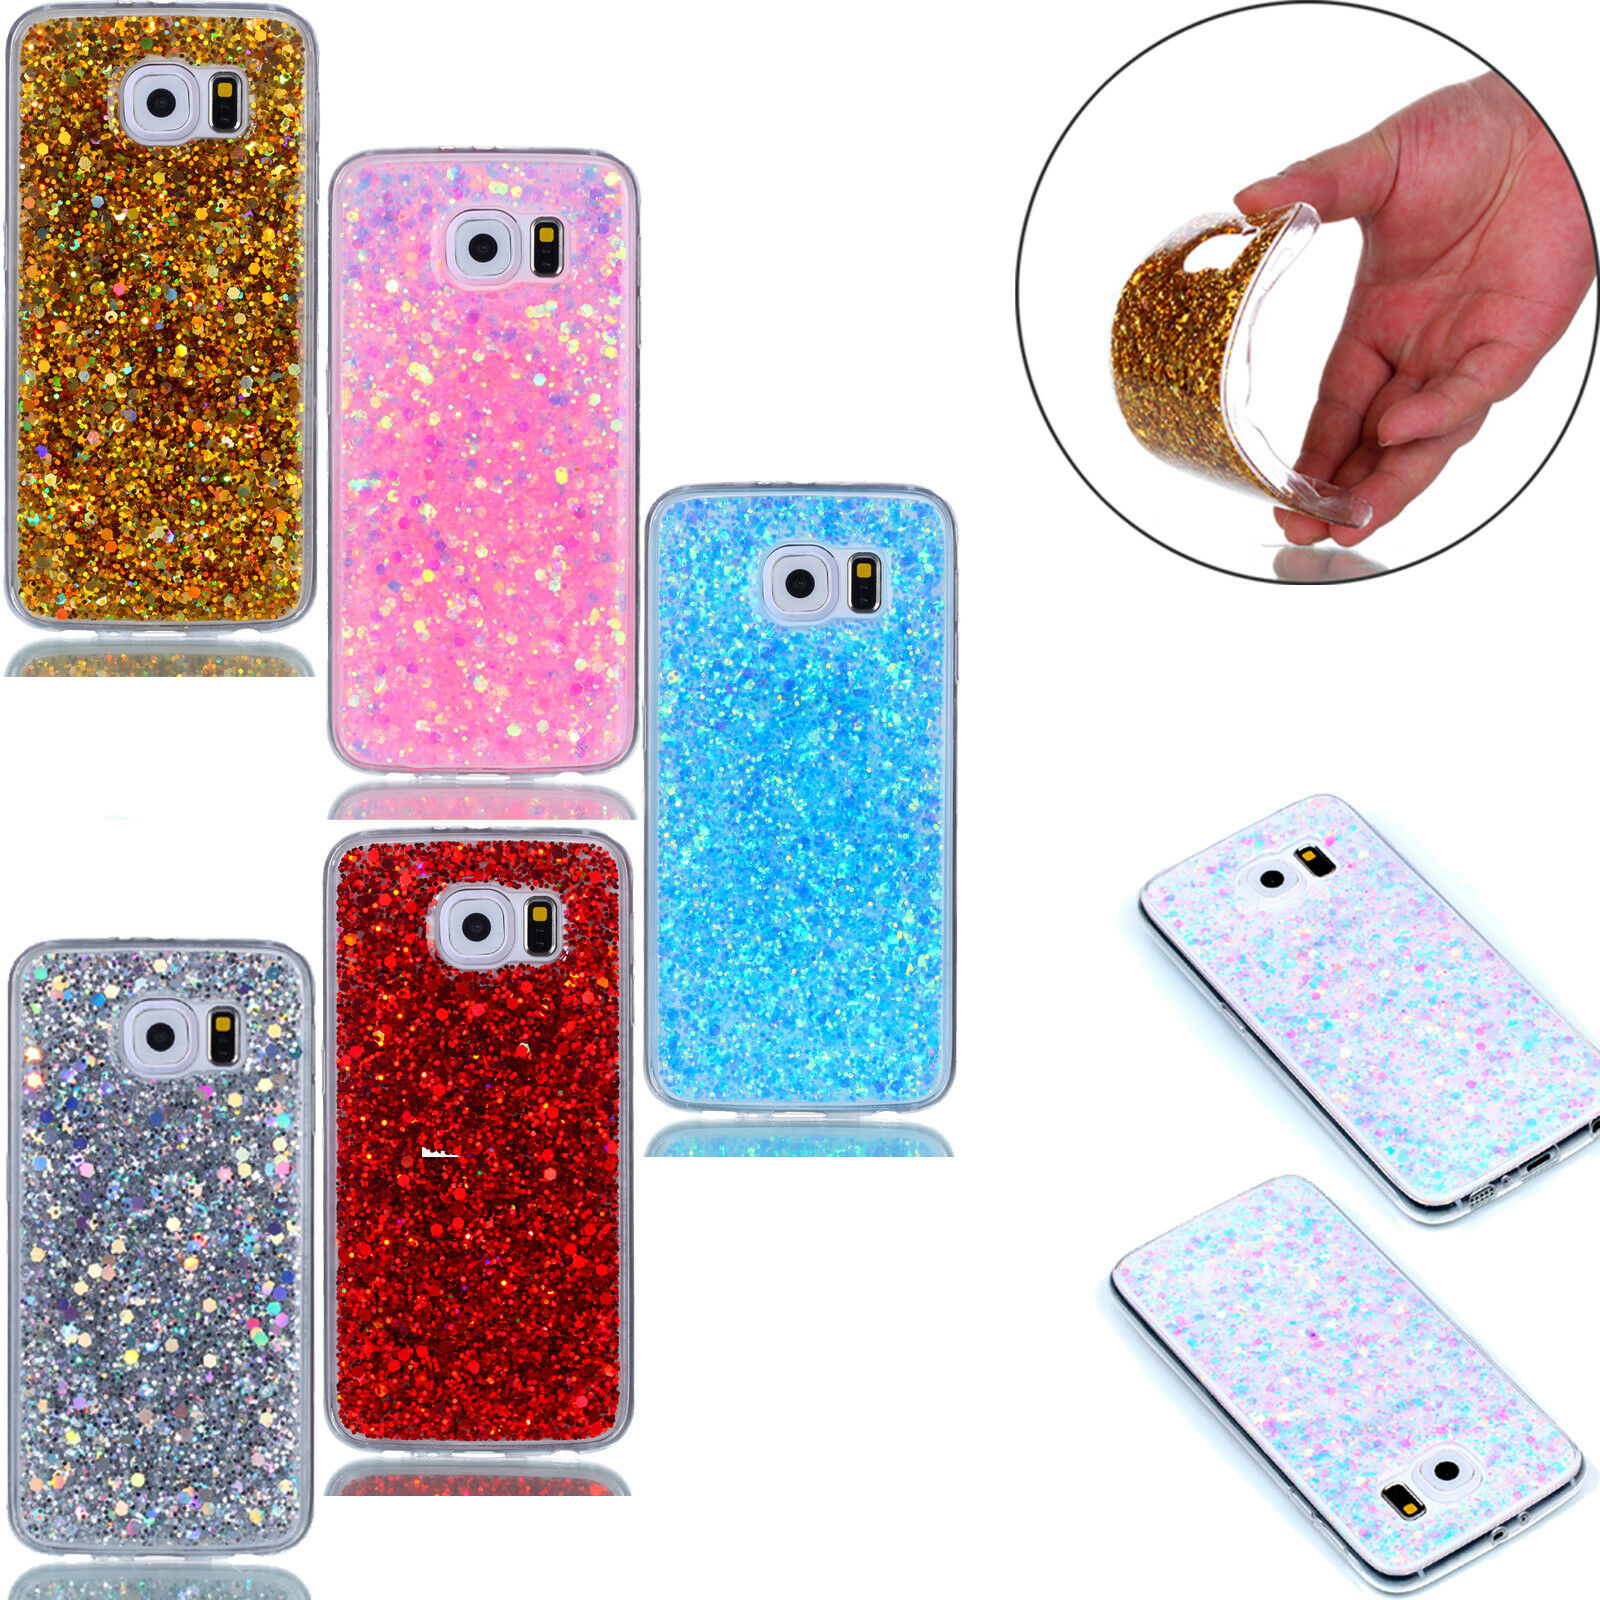 finest selection fcf5d bbf8a Girls Bling Slim Soft TPU Phone Accessories Case Cover For Samsung S7  iphone X